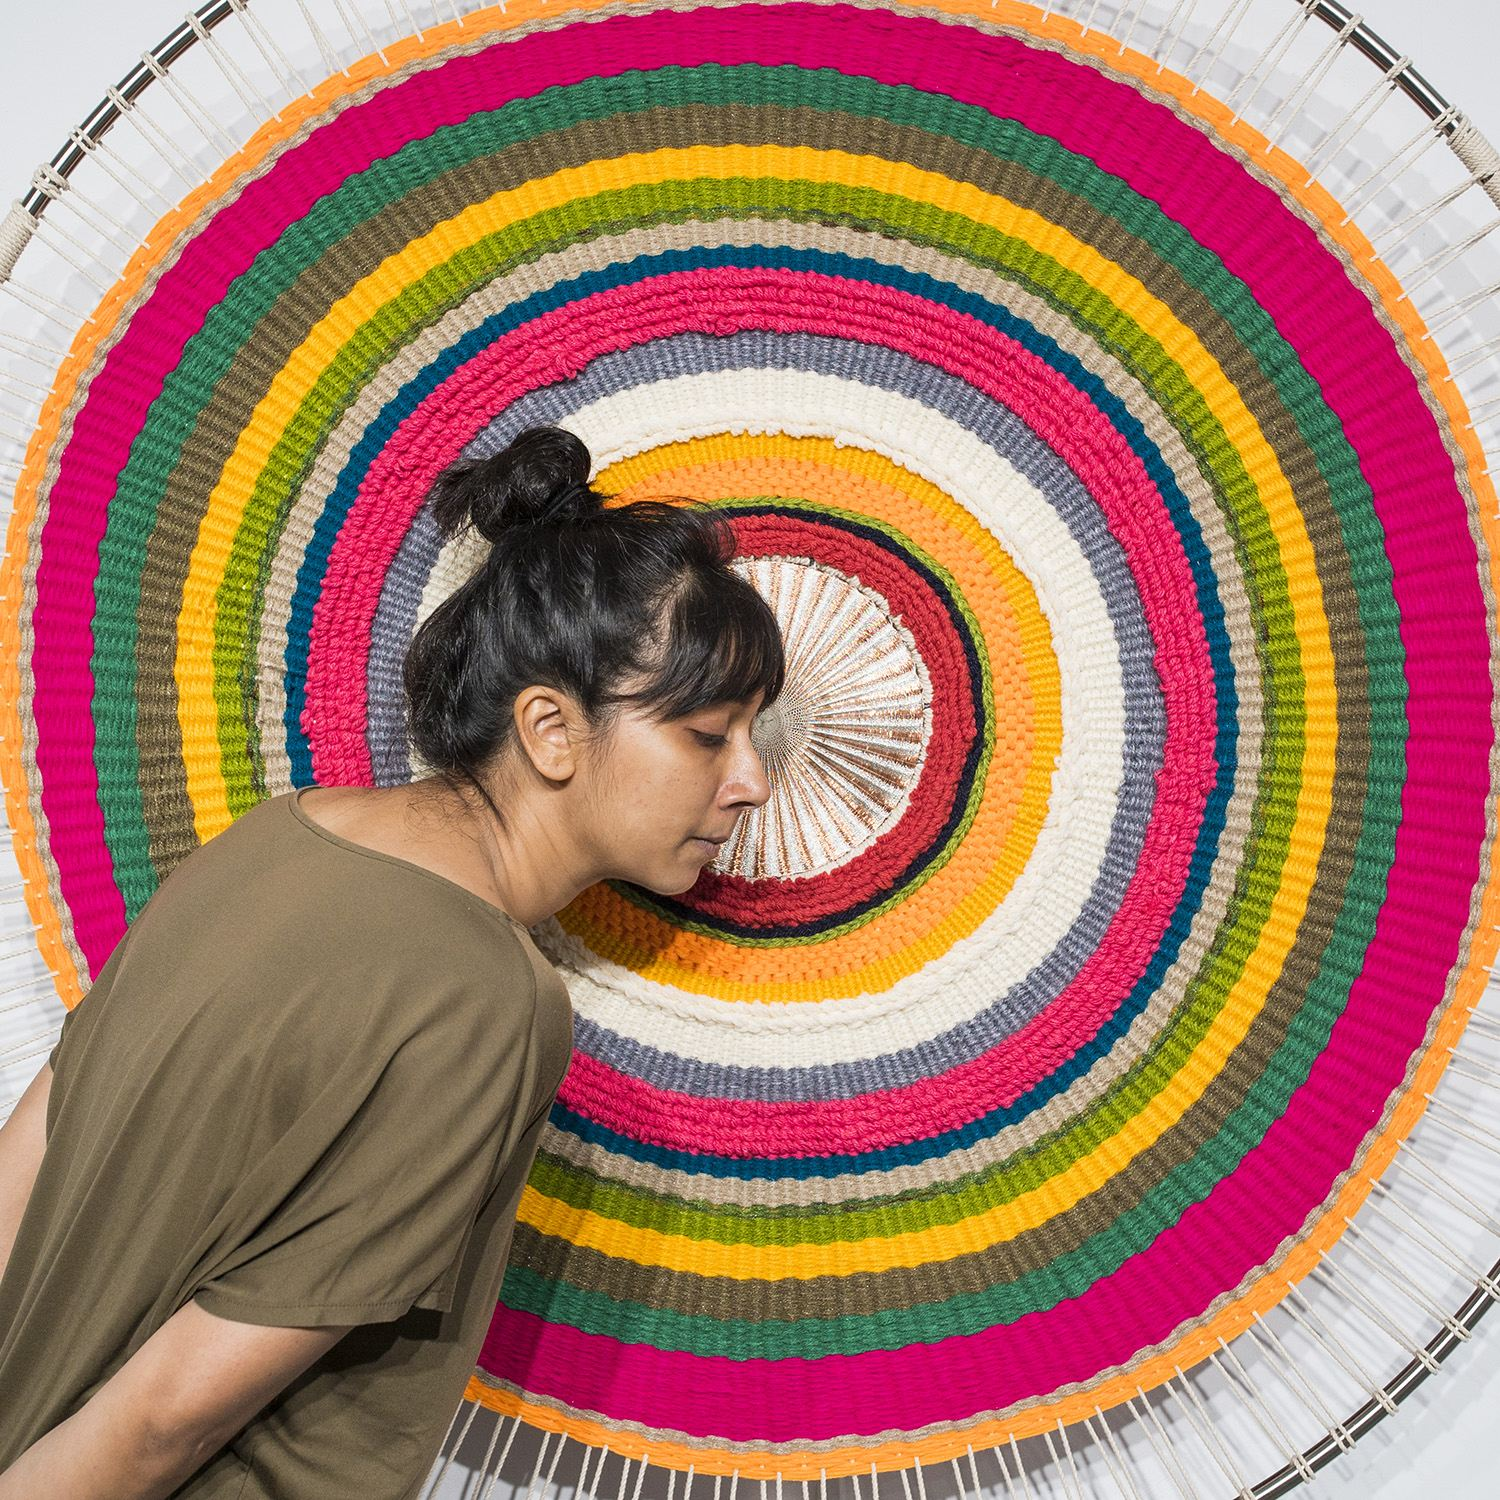 Sound Circles Taiwan Sonic Textile Installation by Hyojin Yoo and Nupur Mathur